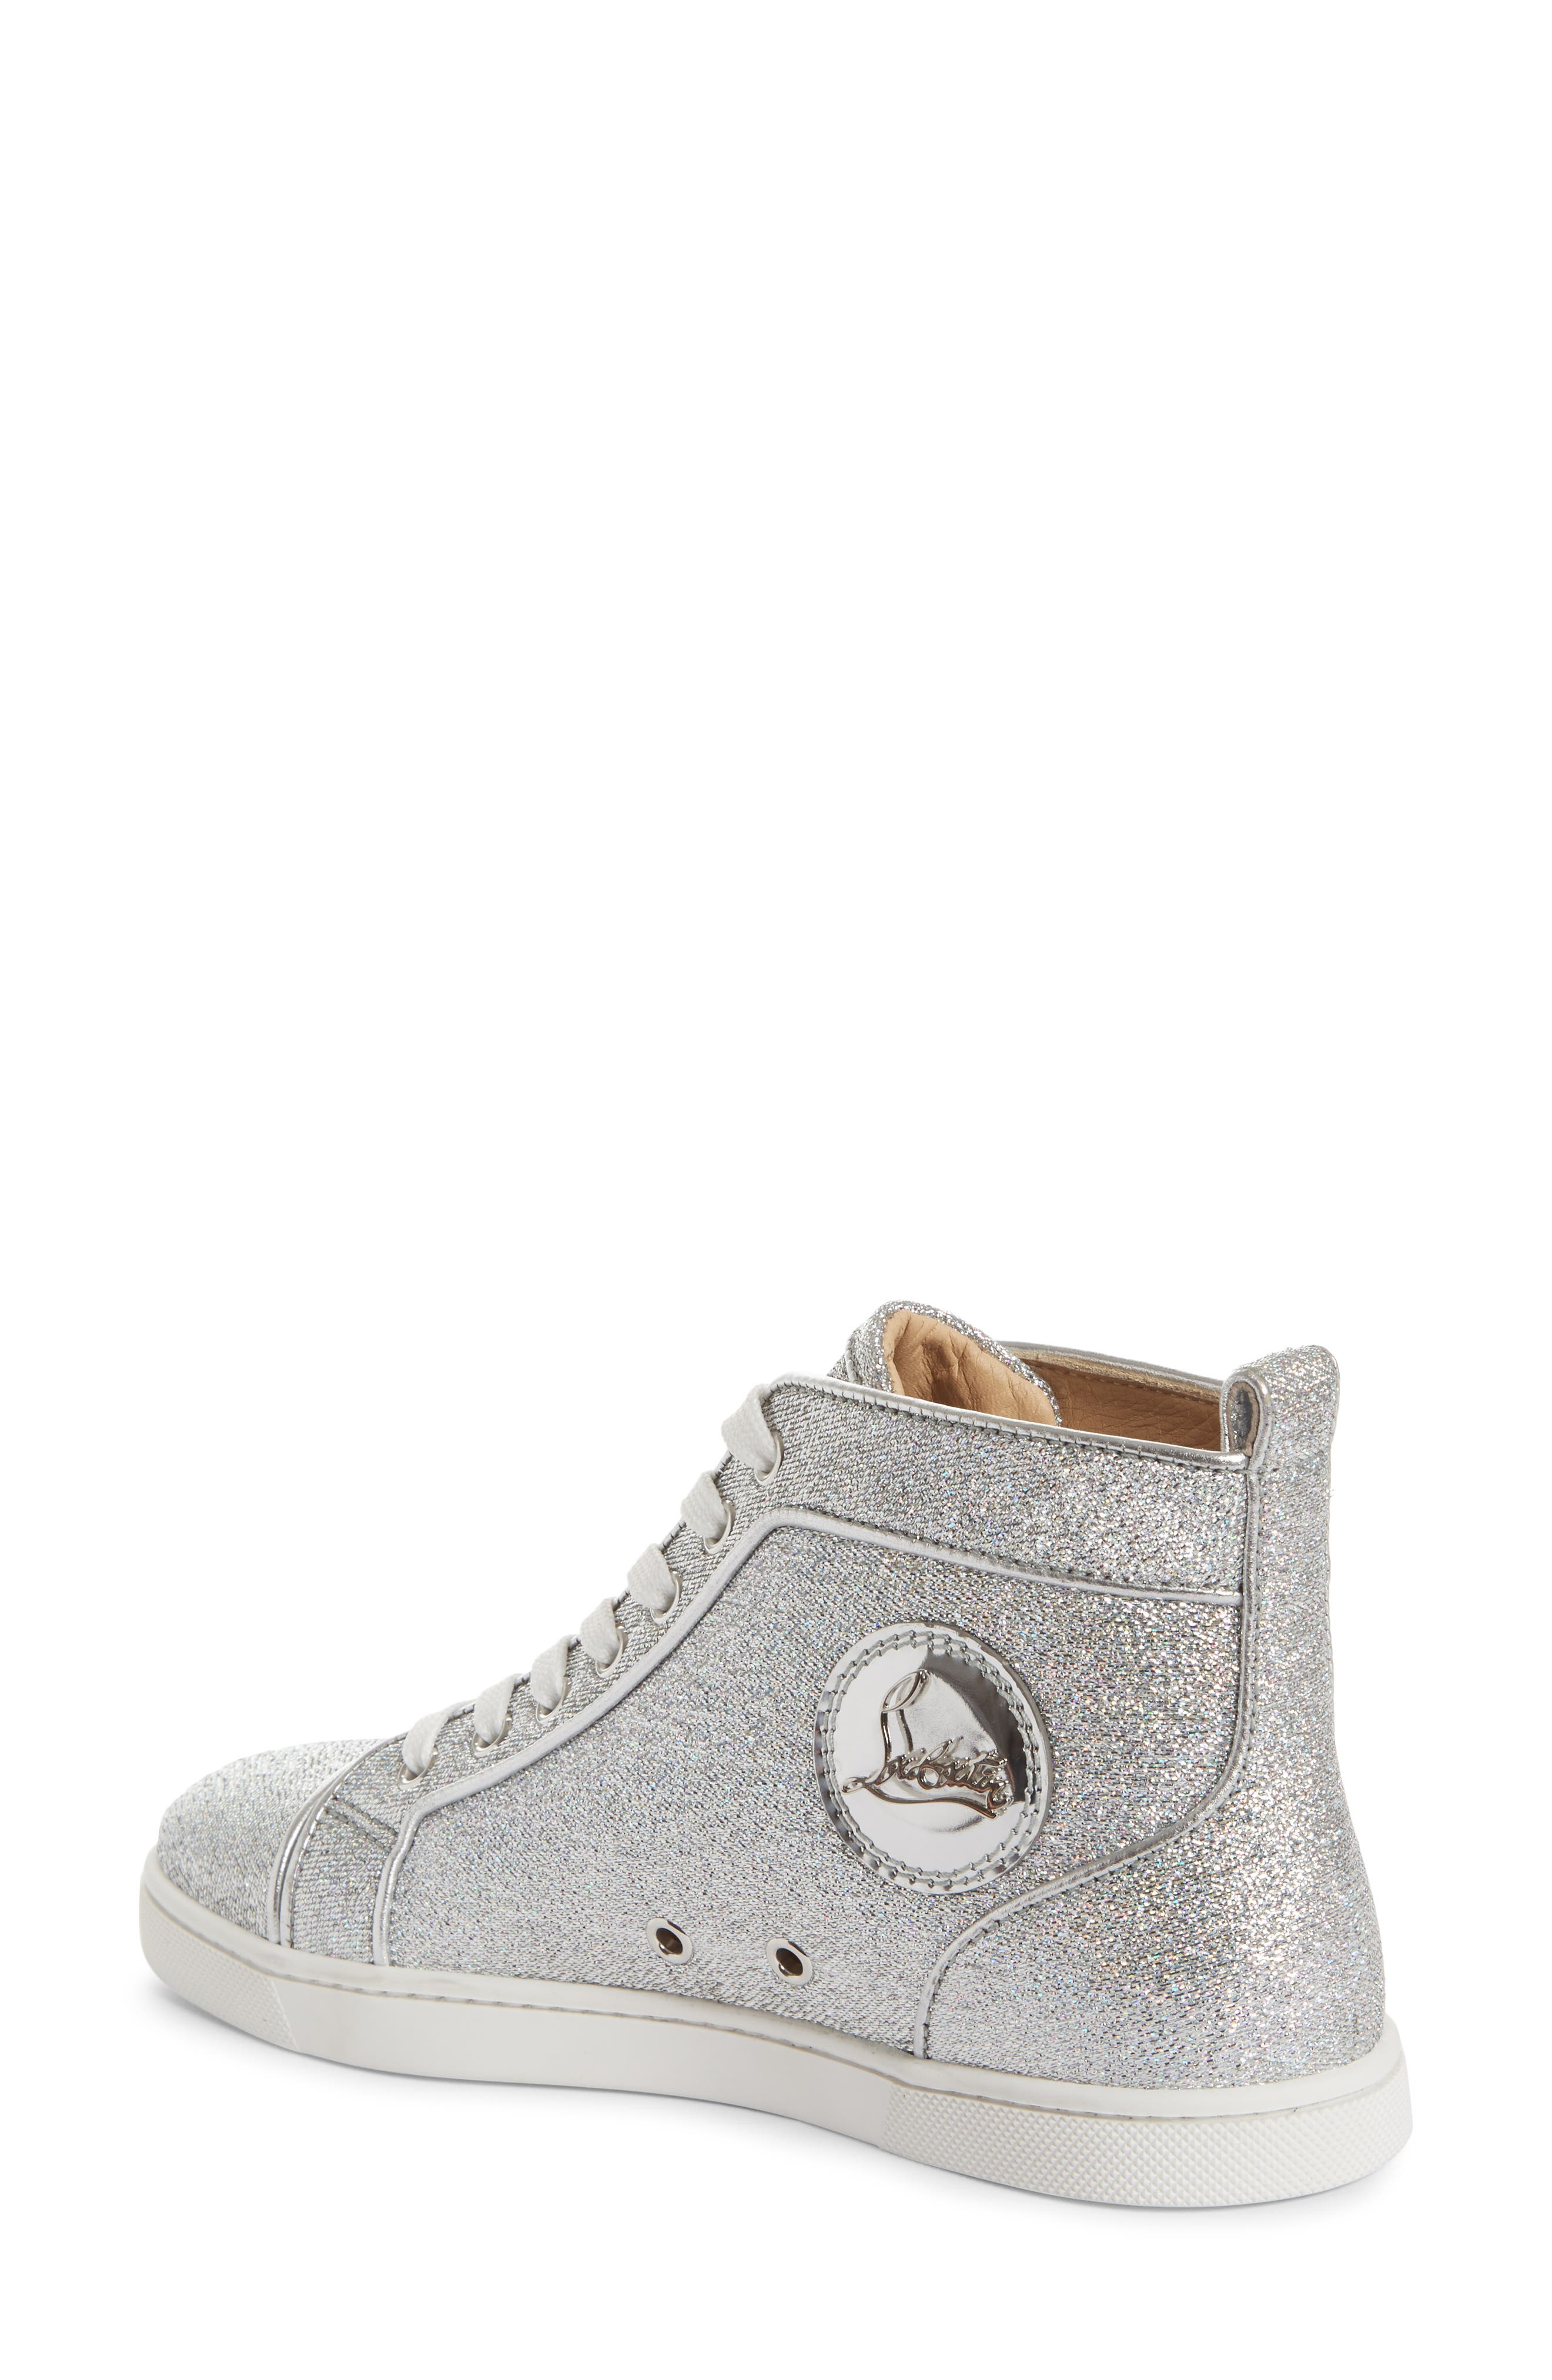 Orlato Metallic High Top Sneaker,                             Alternate thumbnail 2, color,                             Silver